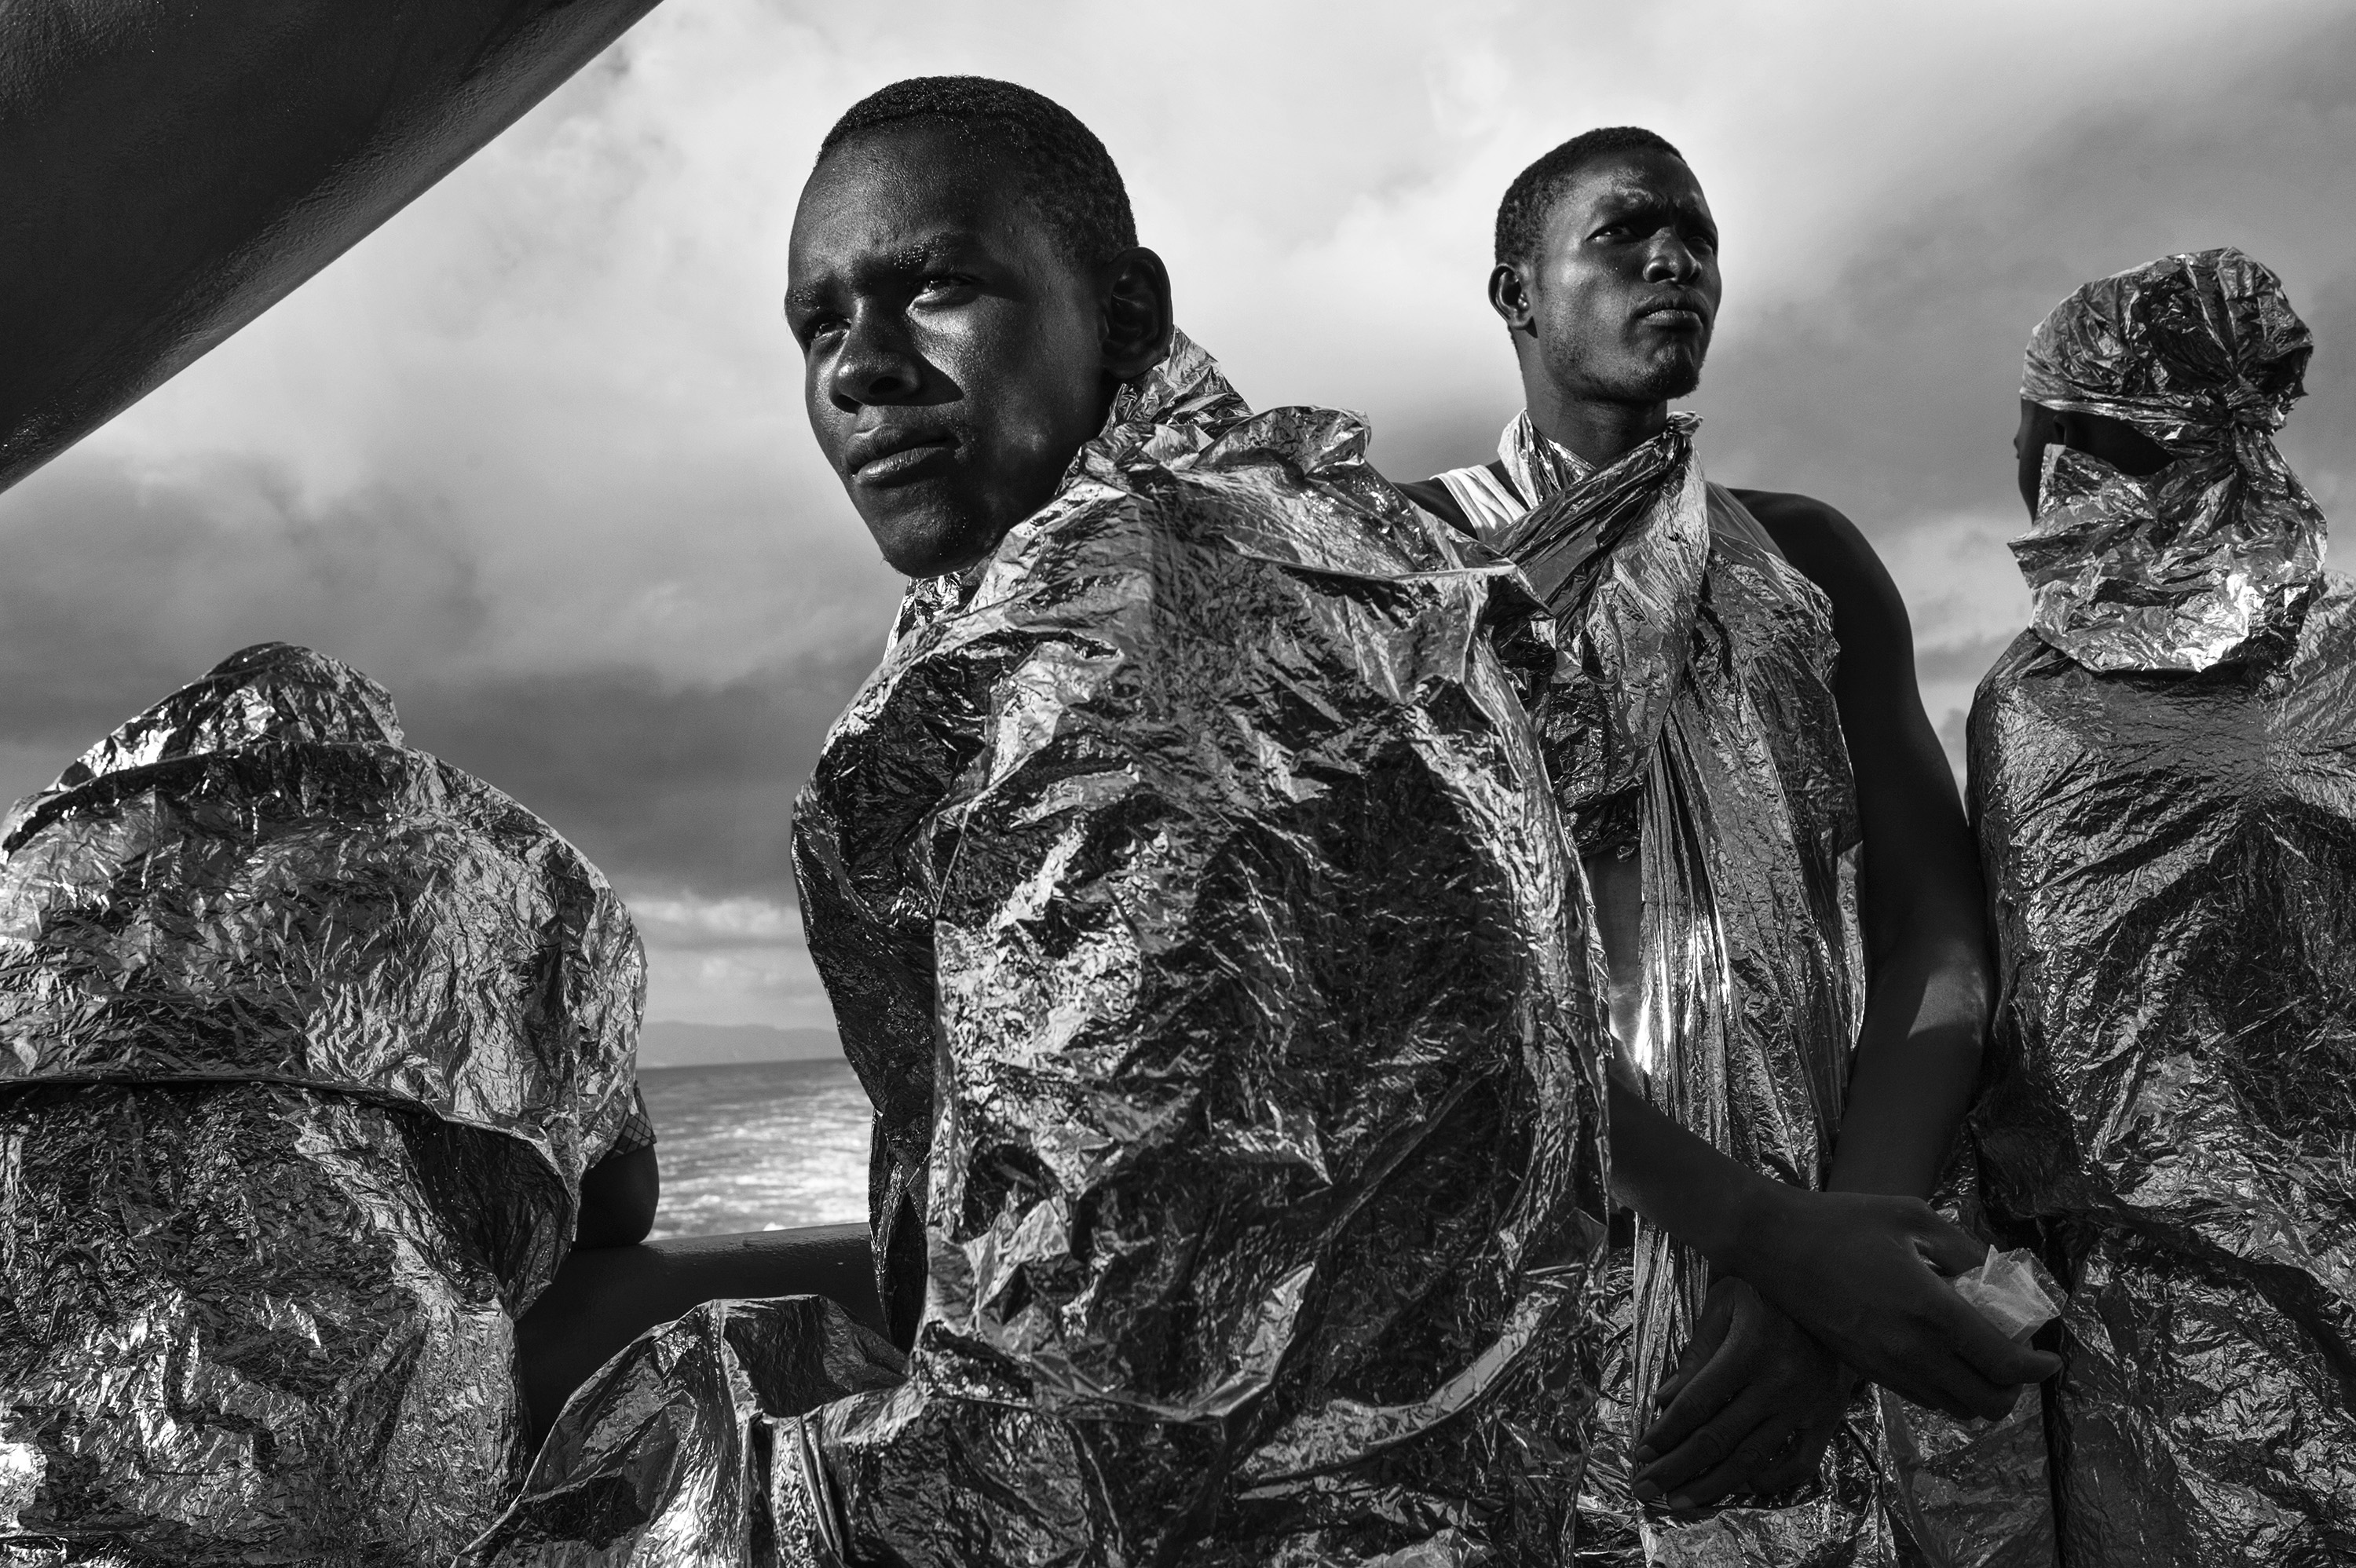 World Press Photo, Migrant